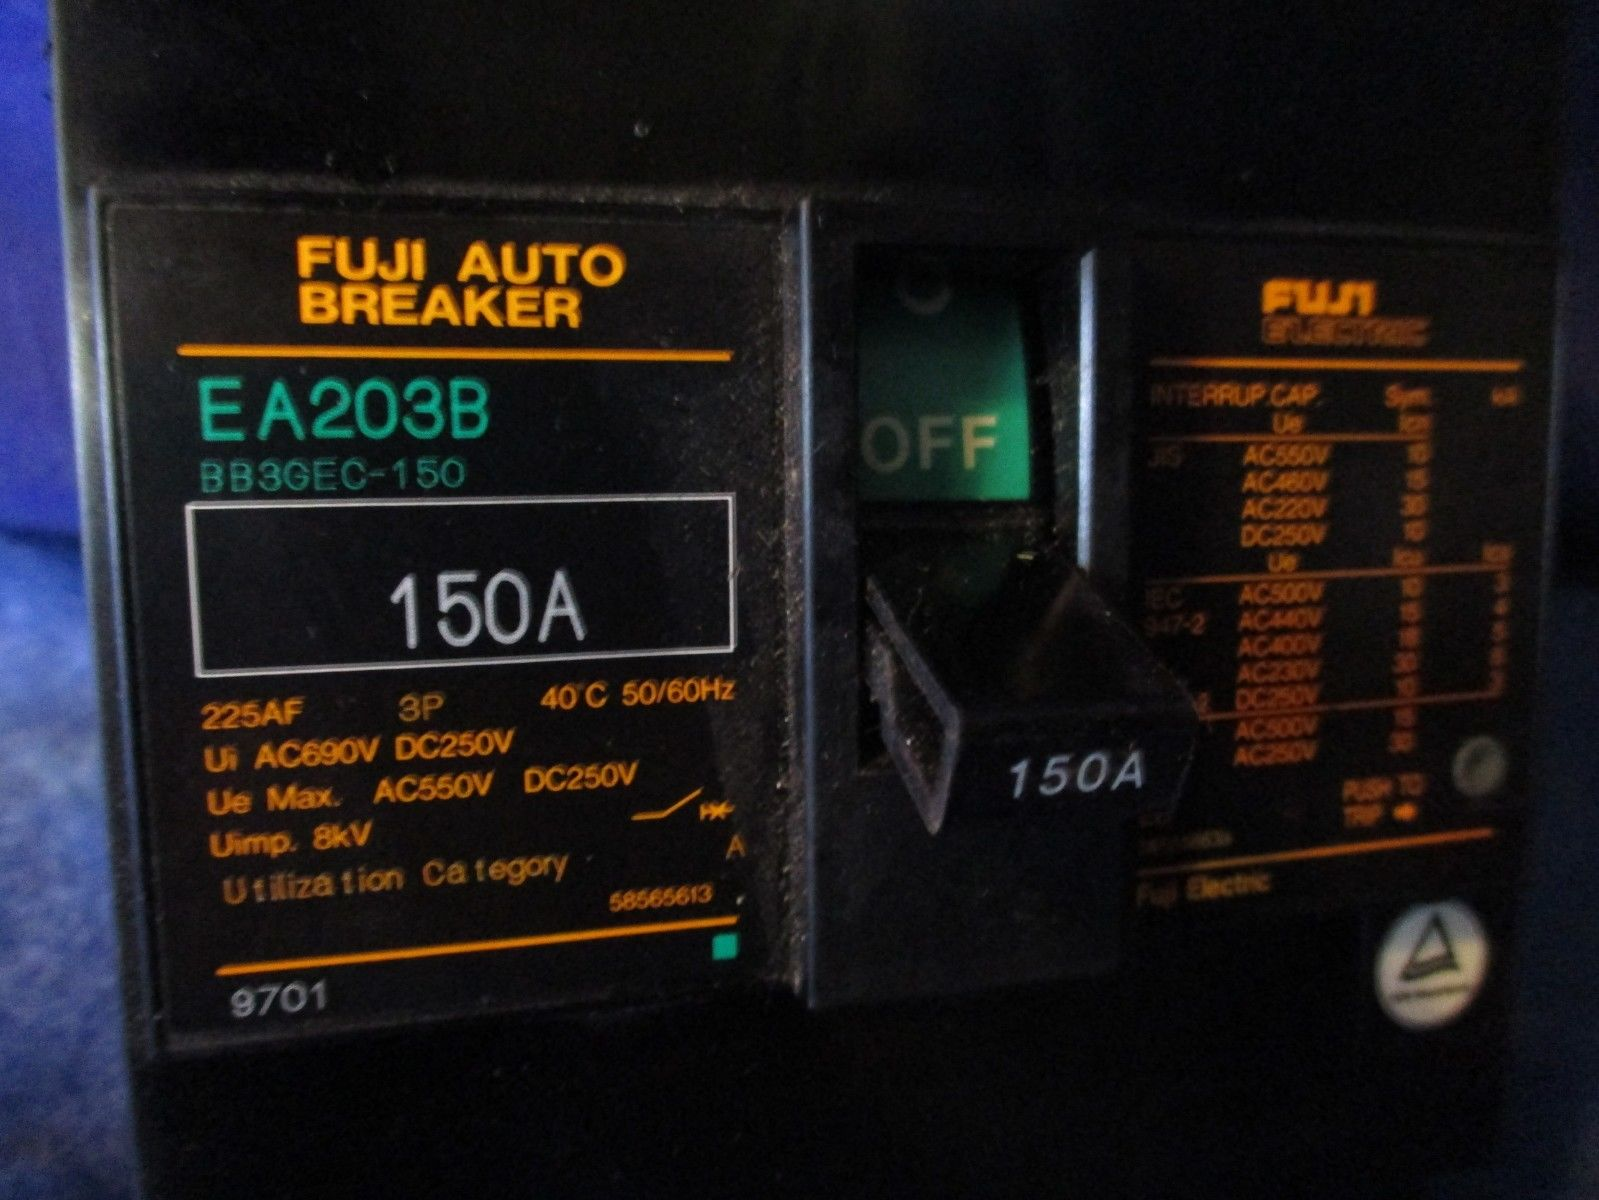 New Fuji Electric EA203B 3P 225A Industrial Automation Auto Circuit Breaker